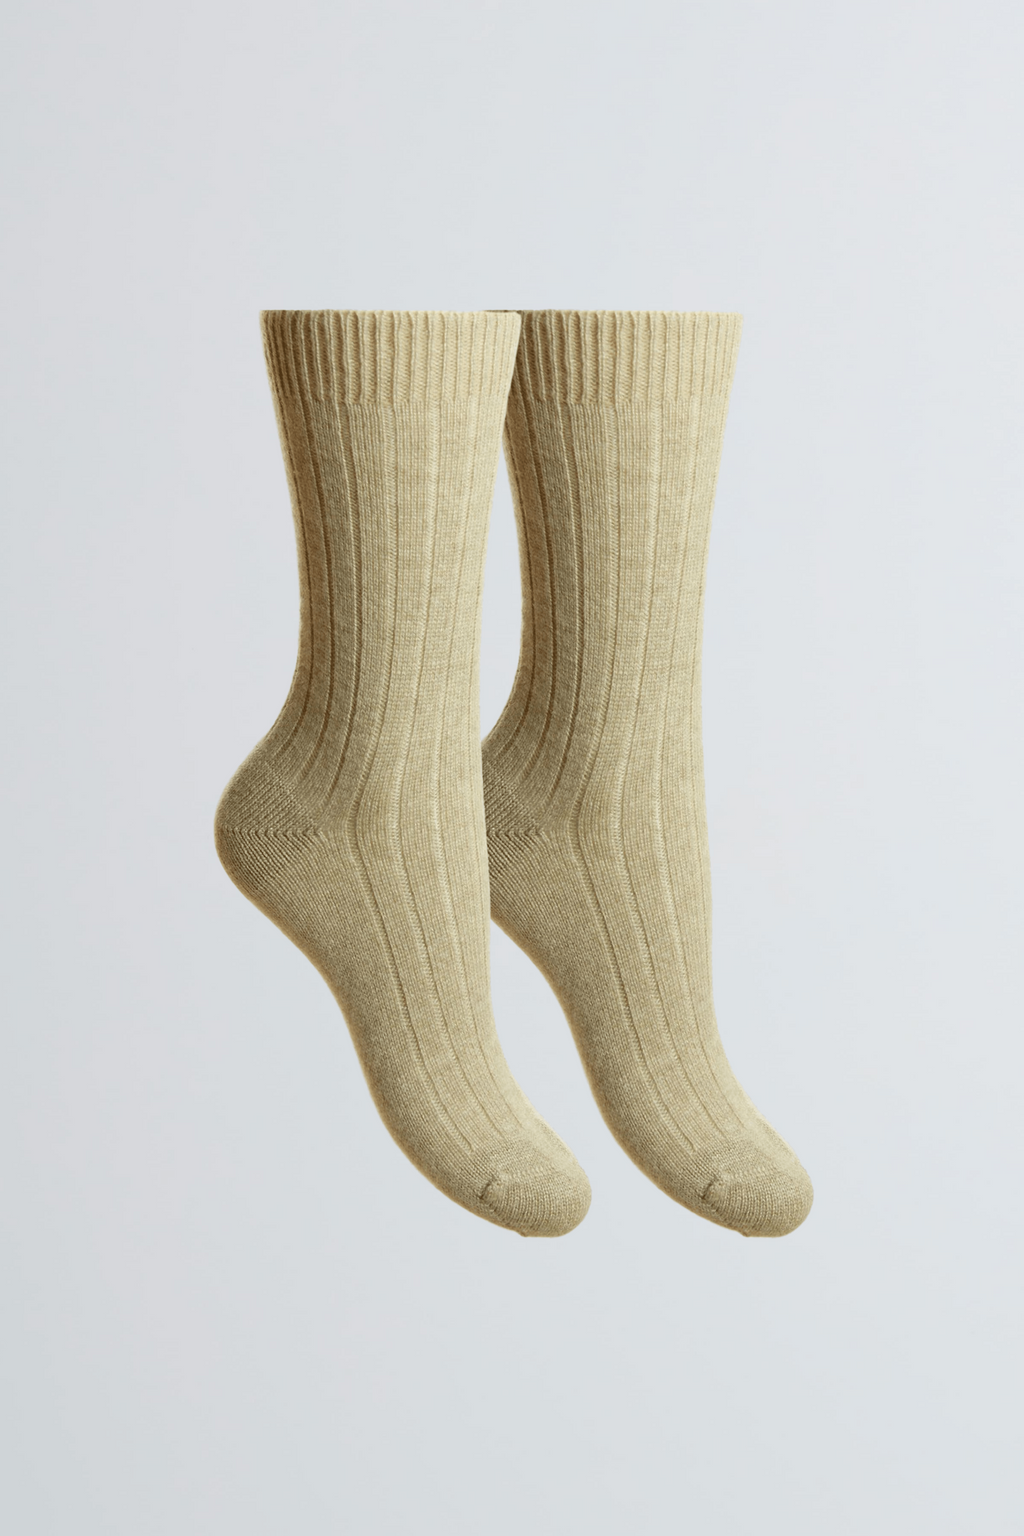 Soft Scottish Cashmere Women's Socks - Comfortable Natural Socks Lavender Hill Clothing - Cozy Bed Socks